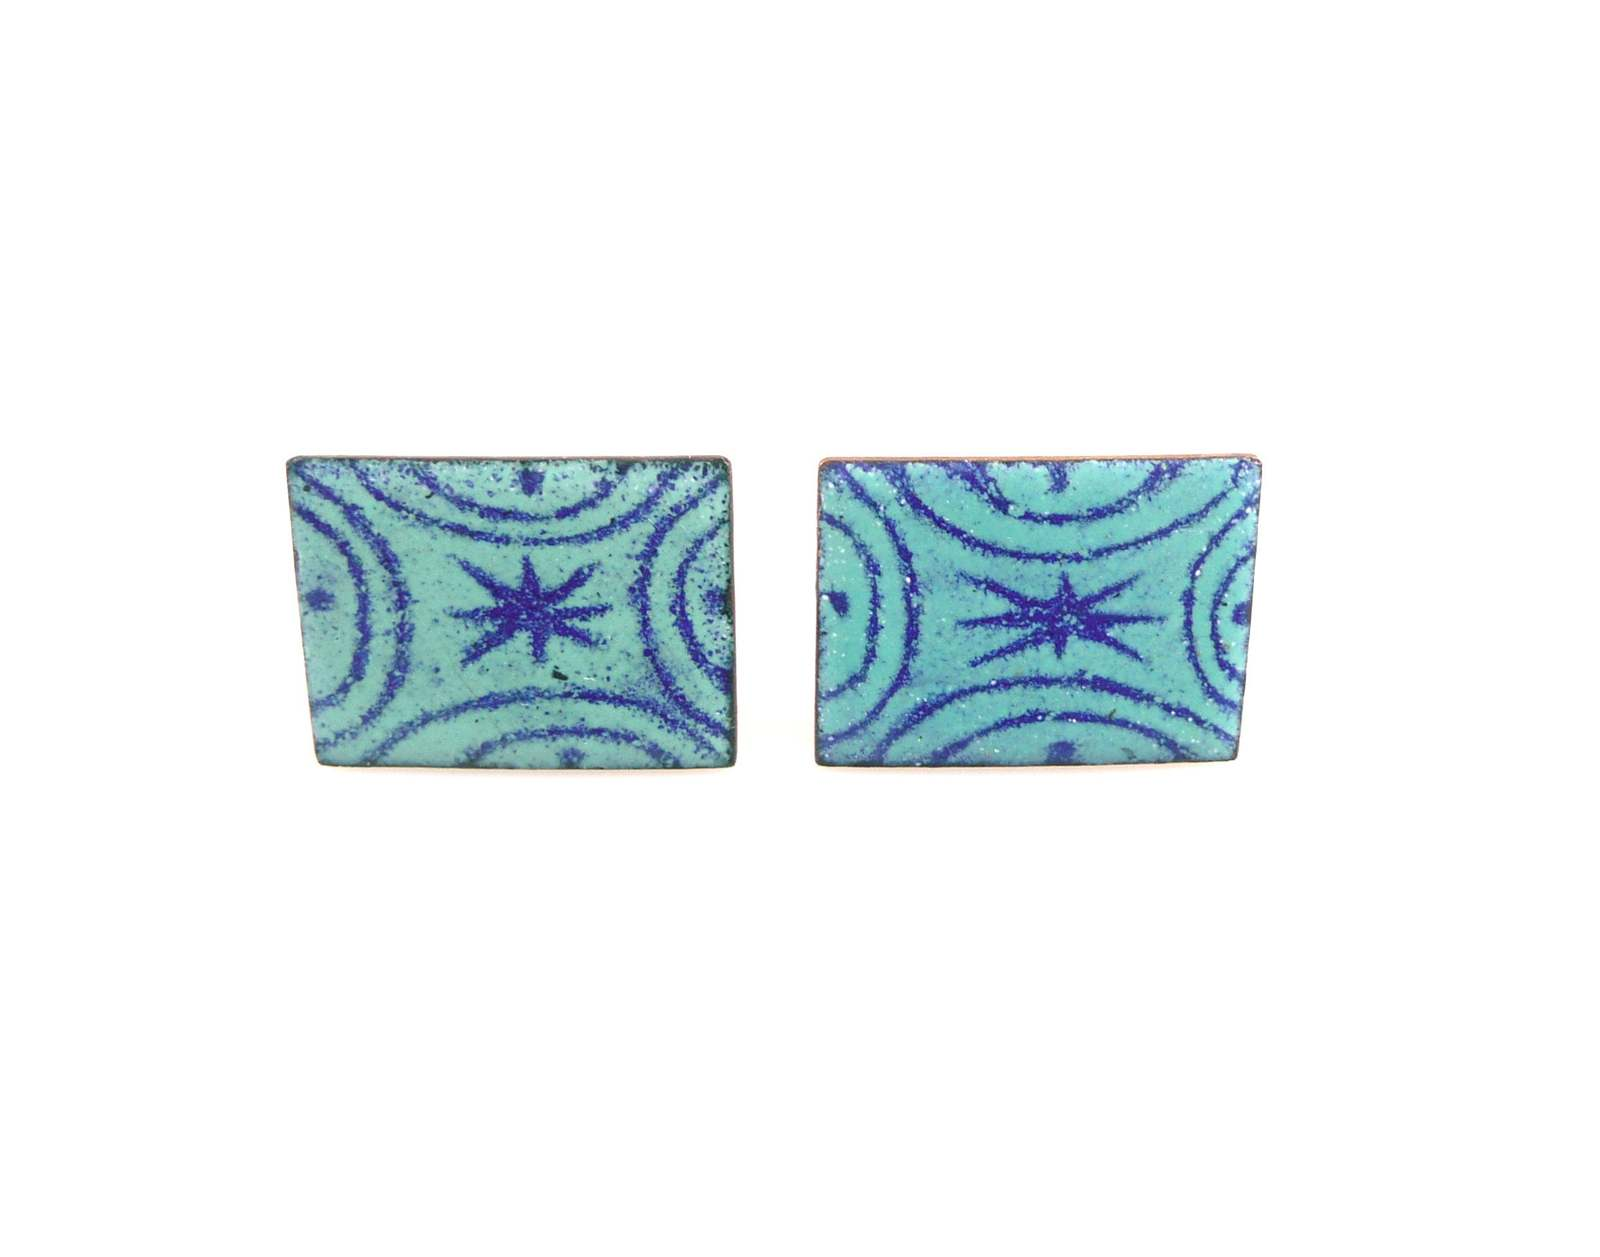 Primary image for BIG Vintage 1950s 60s Artisan Handmade Copper Enamel Abstract Modernist CUFFLINK